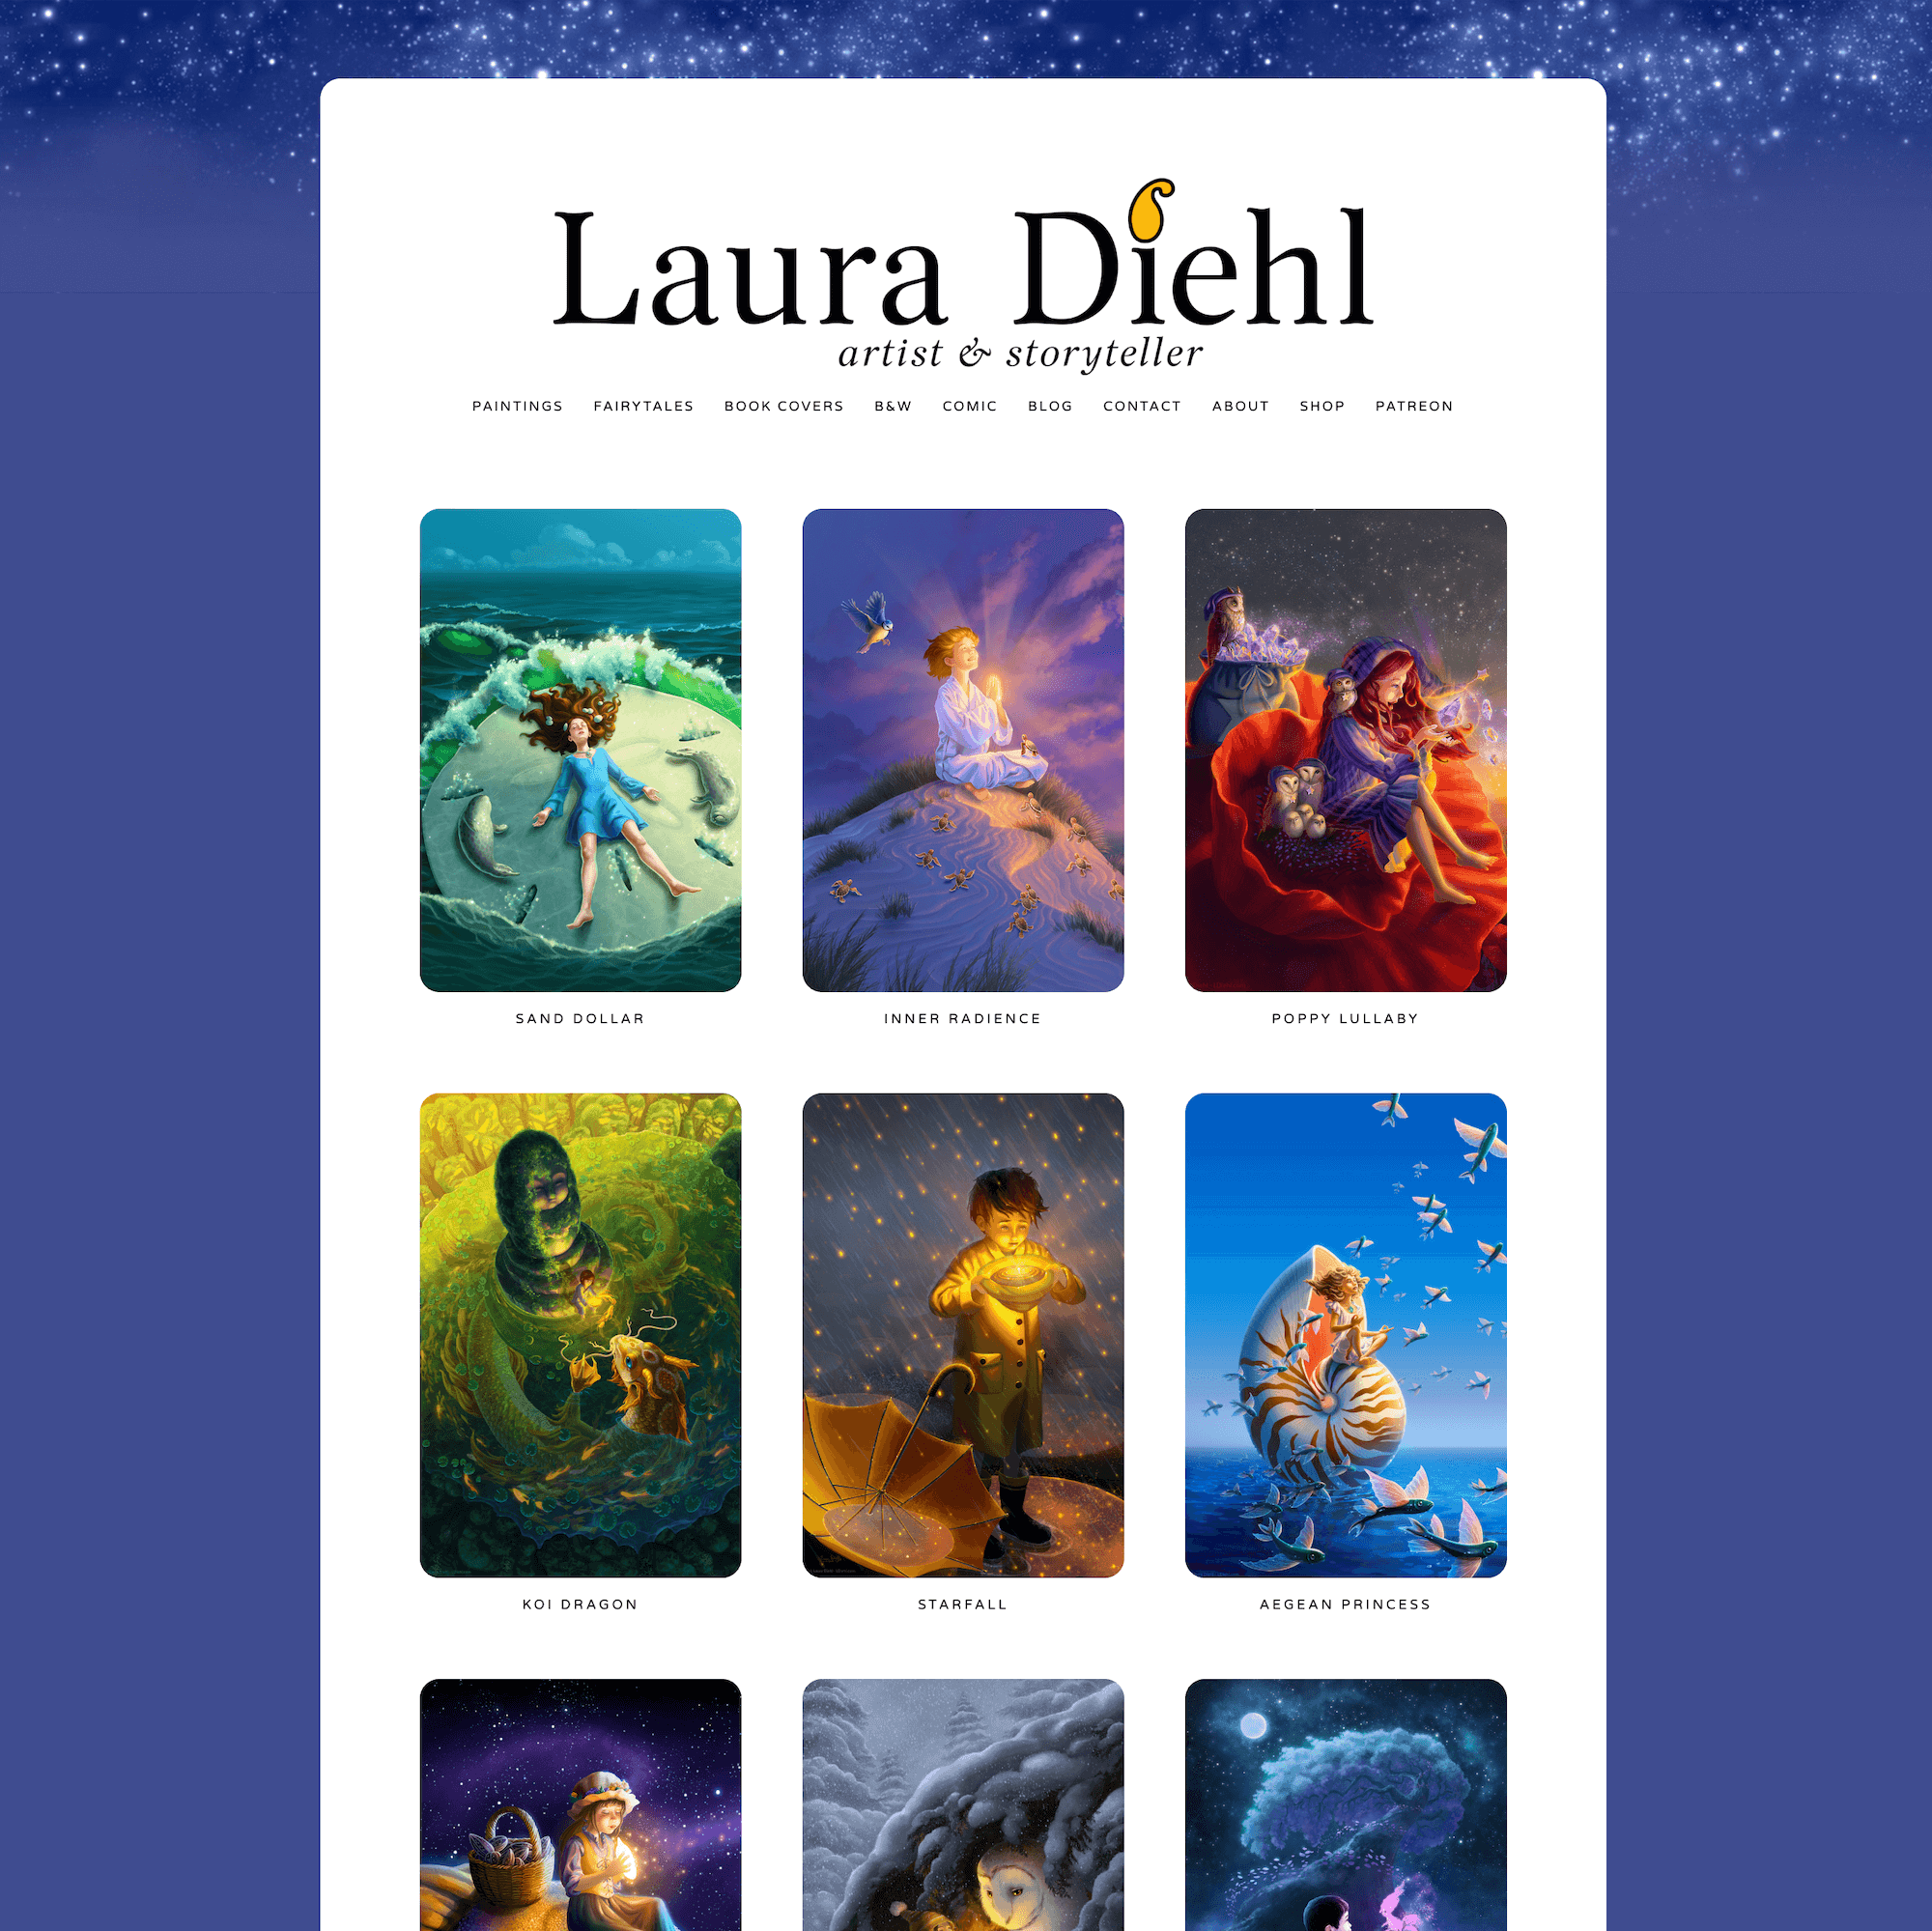 Screenshot of  Laura Diehl's website  home page.